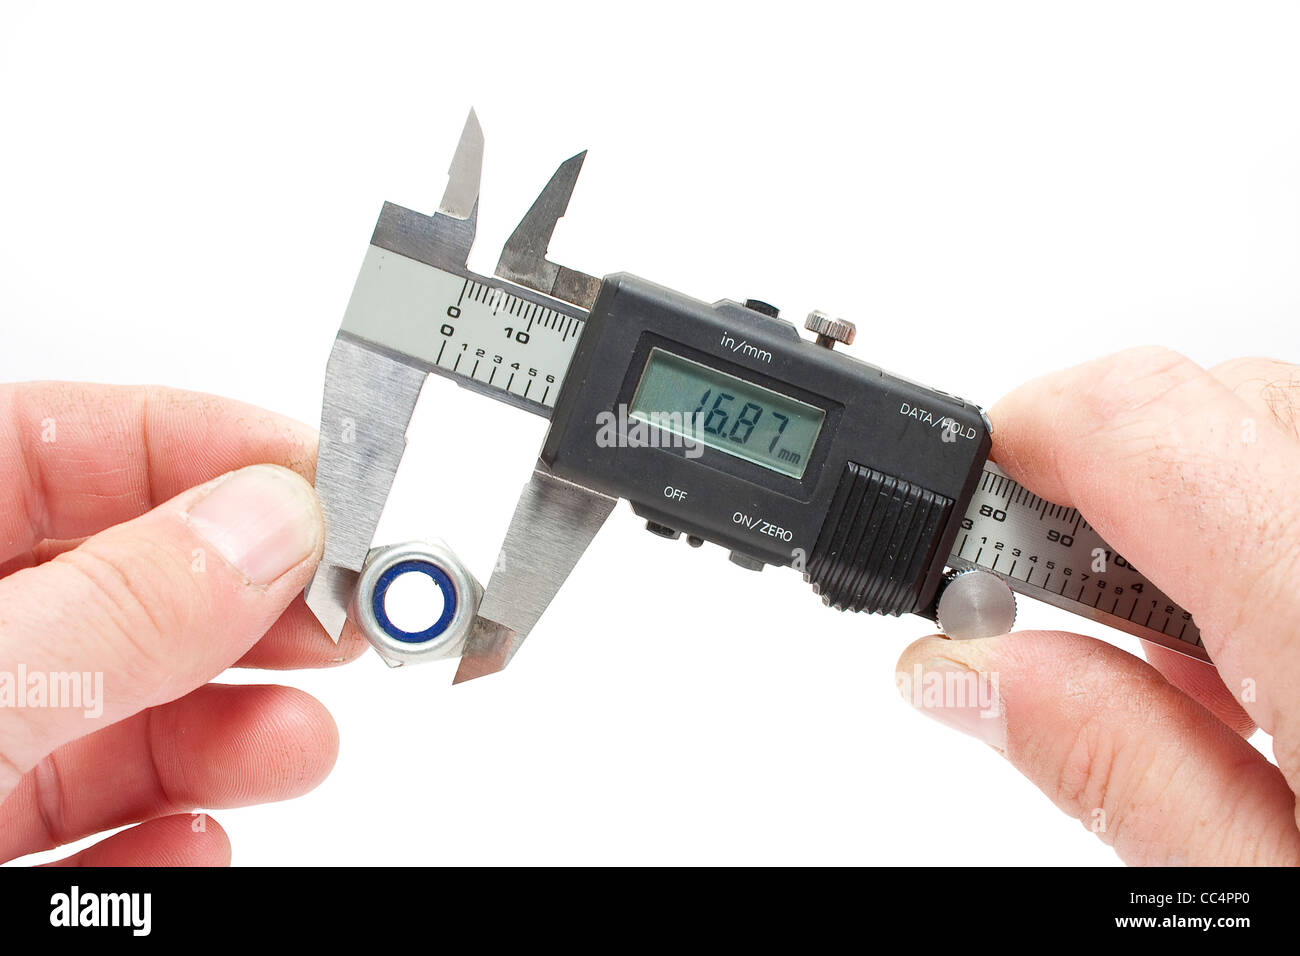 Measuring Equipment Digital Vernier Gauge measuring Nut - Stock Image